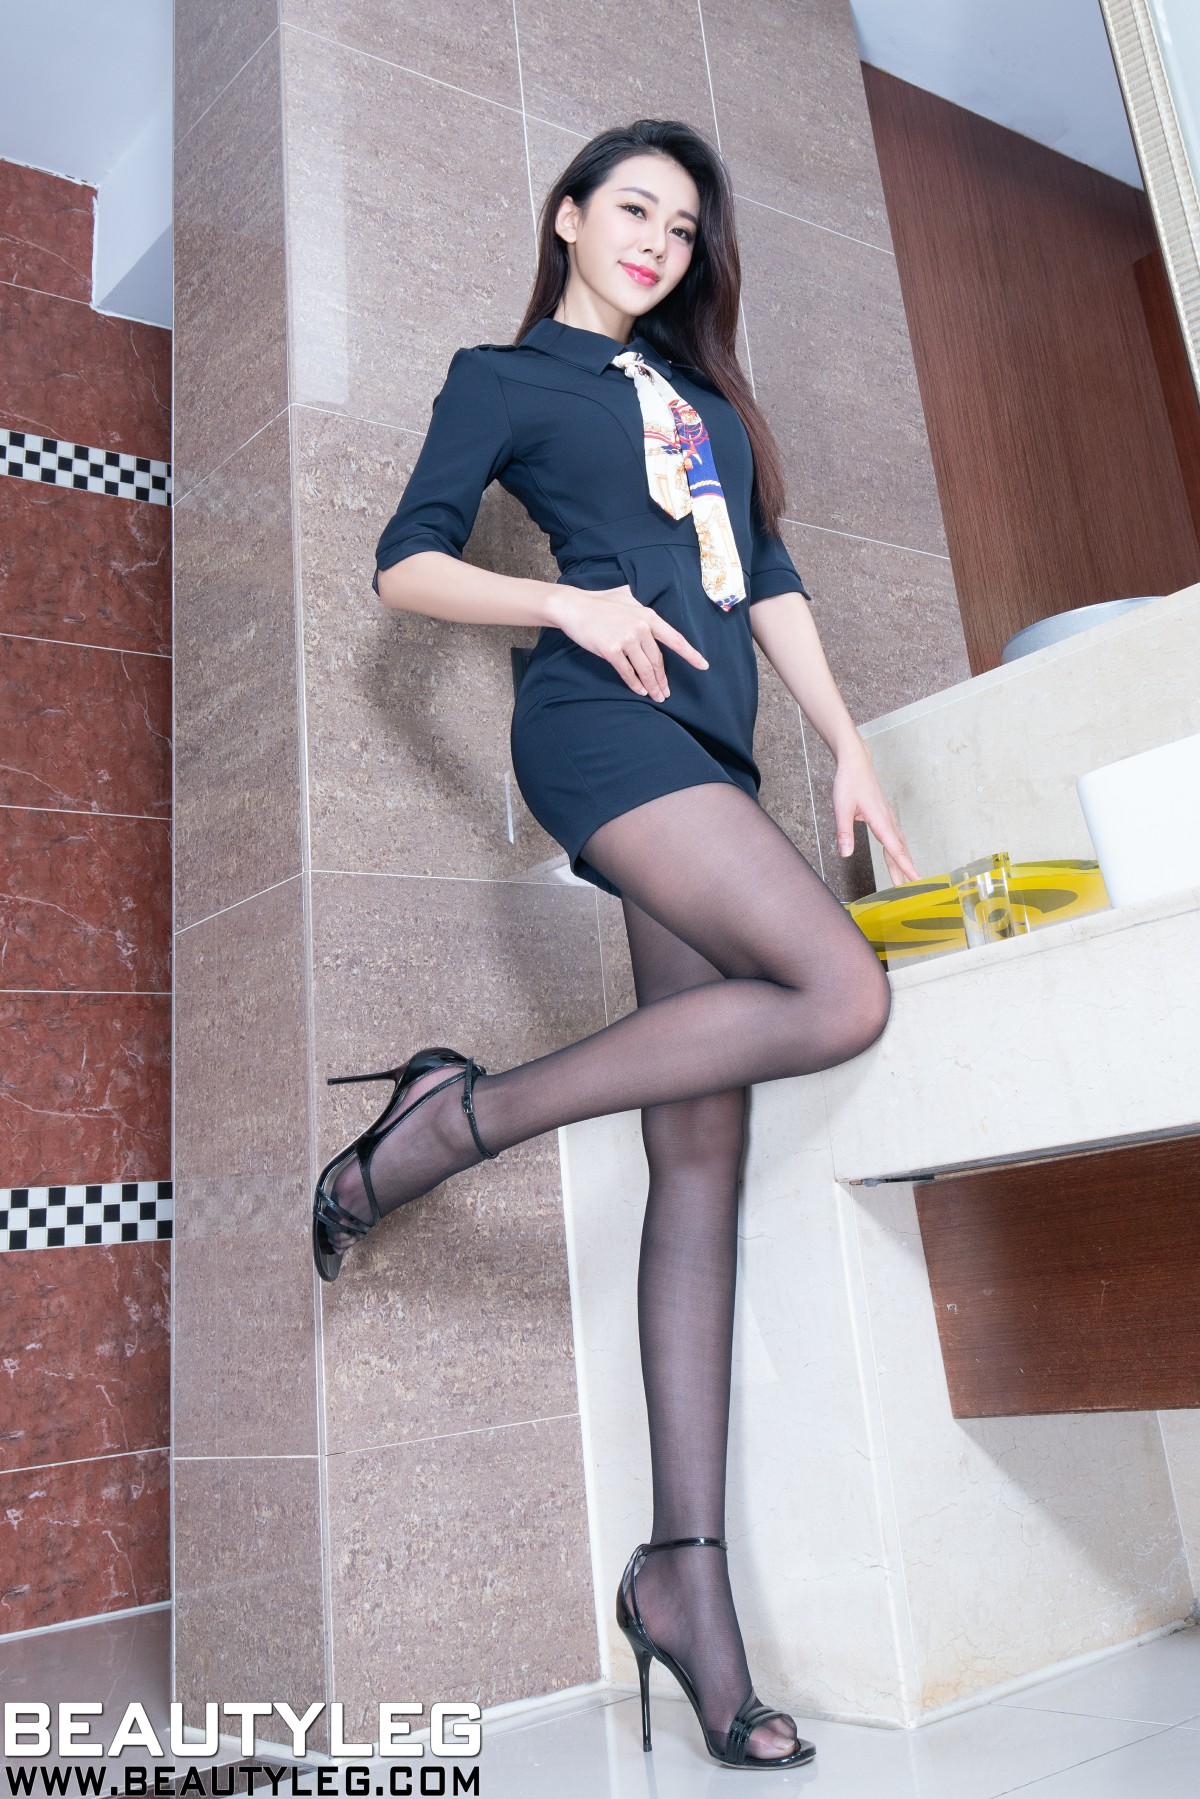 [Beautyleg]美腿写真 2019.03.11 No.1737 Jennifer (4).jpg